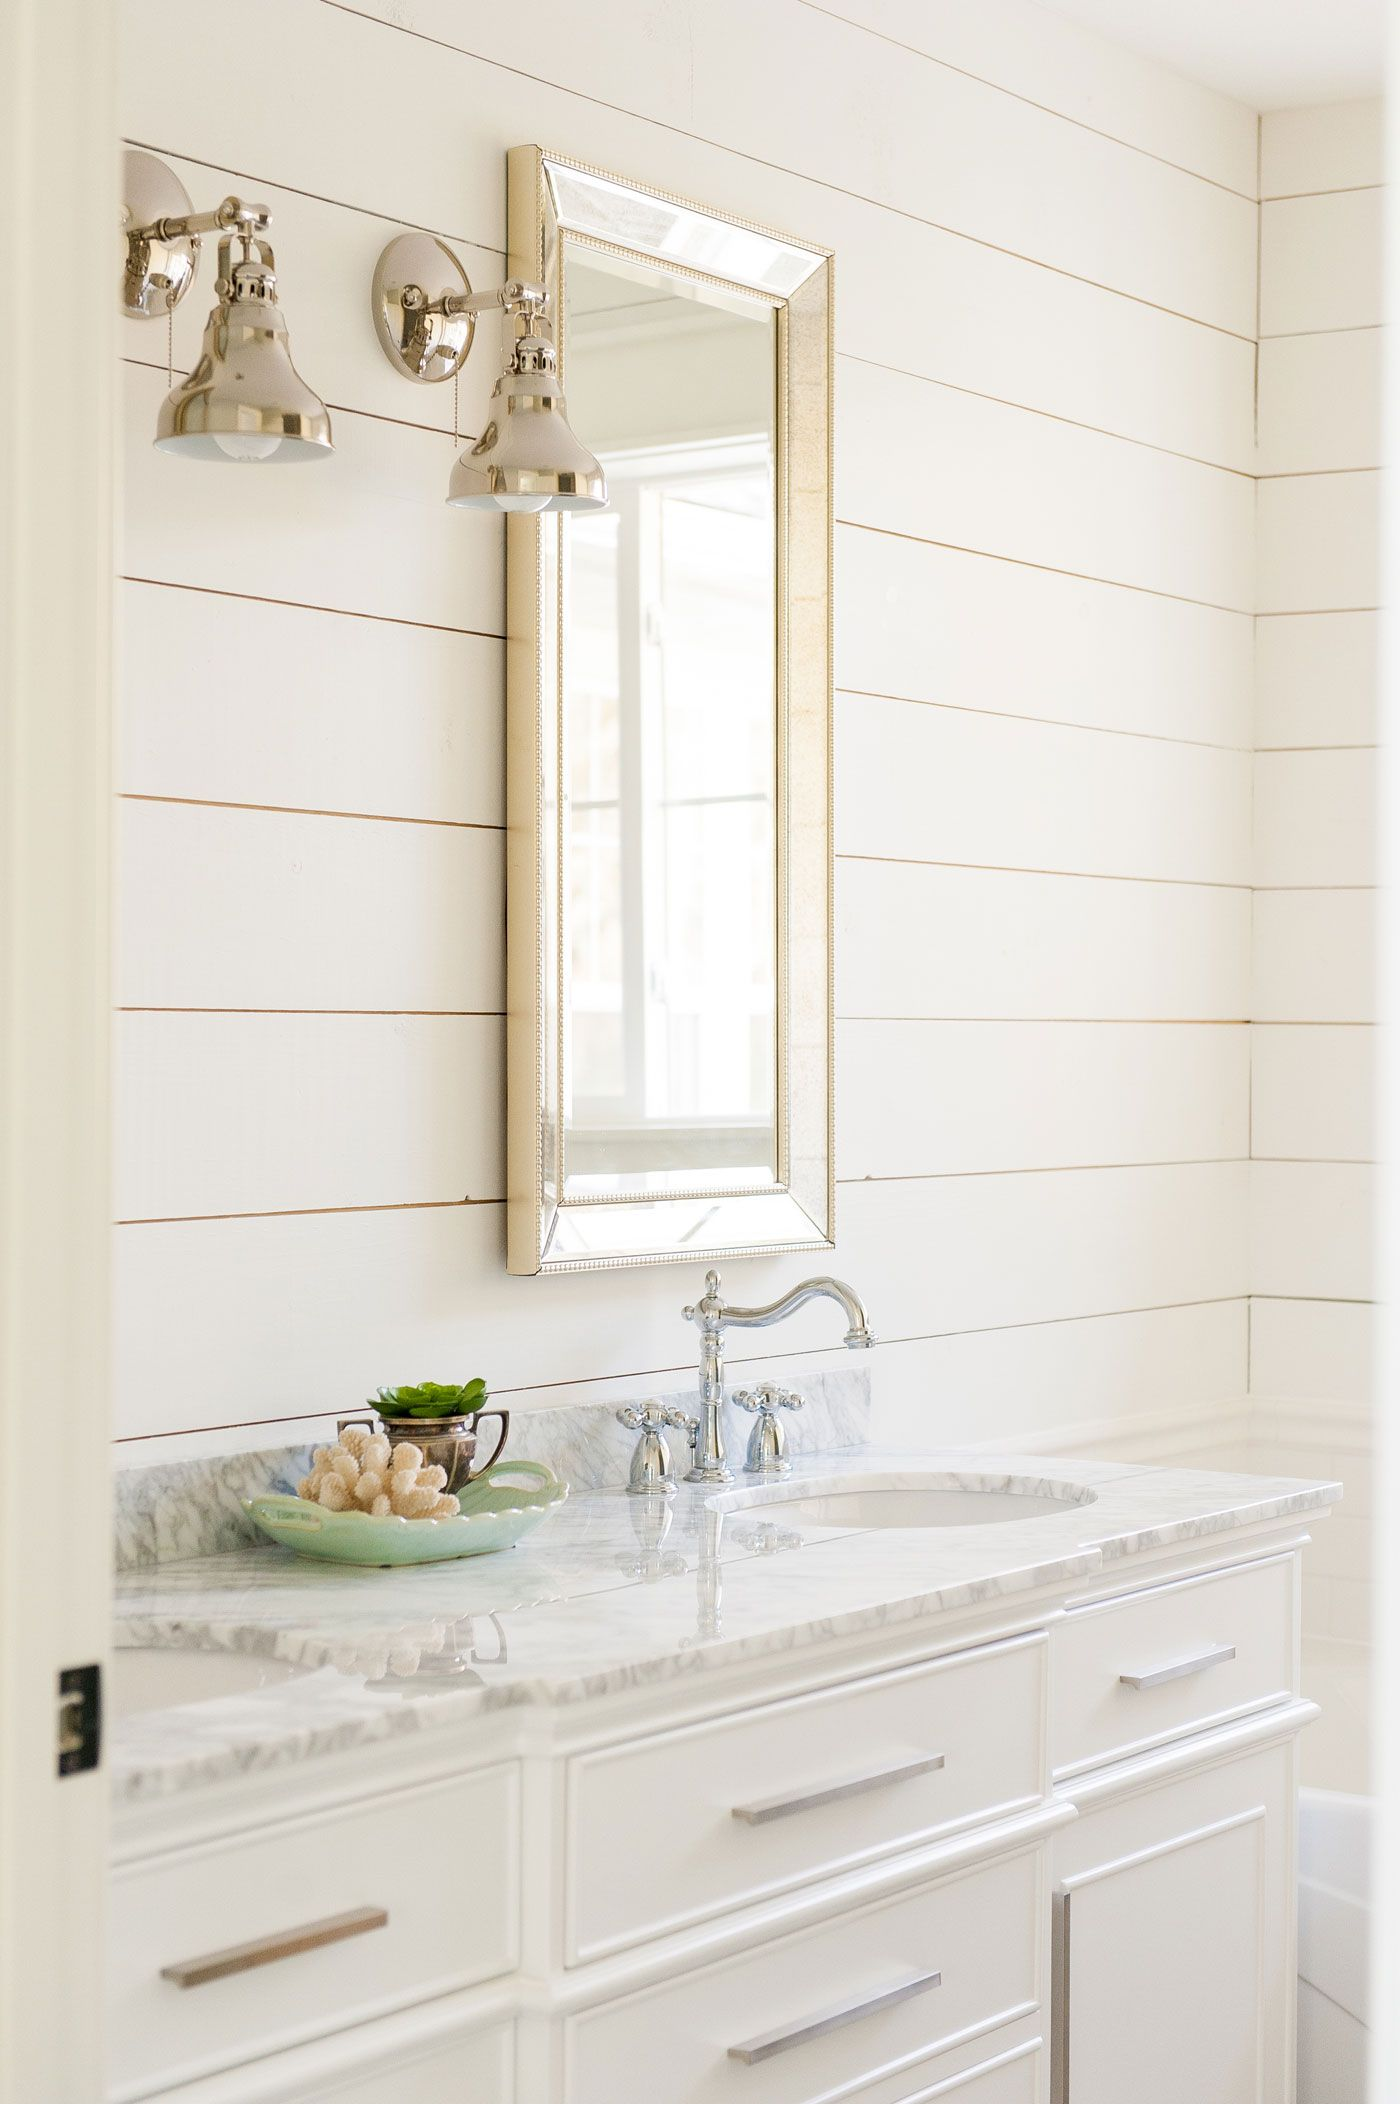 Alabaster Sherwin Williams Eggshell Sheenbest White Paint Colors For Shiplap Sw Alabaste Bathroom Paint Colors White Paint Colors White Bathroom Paint Colors